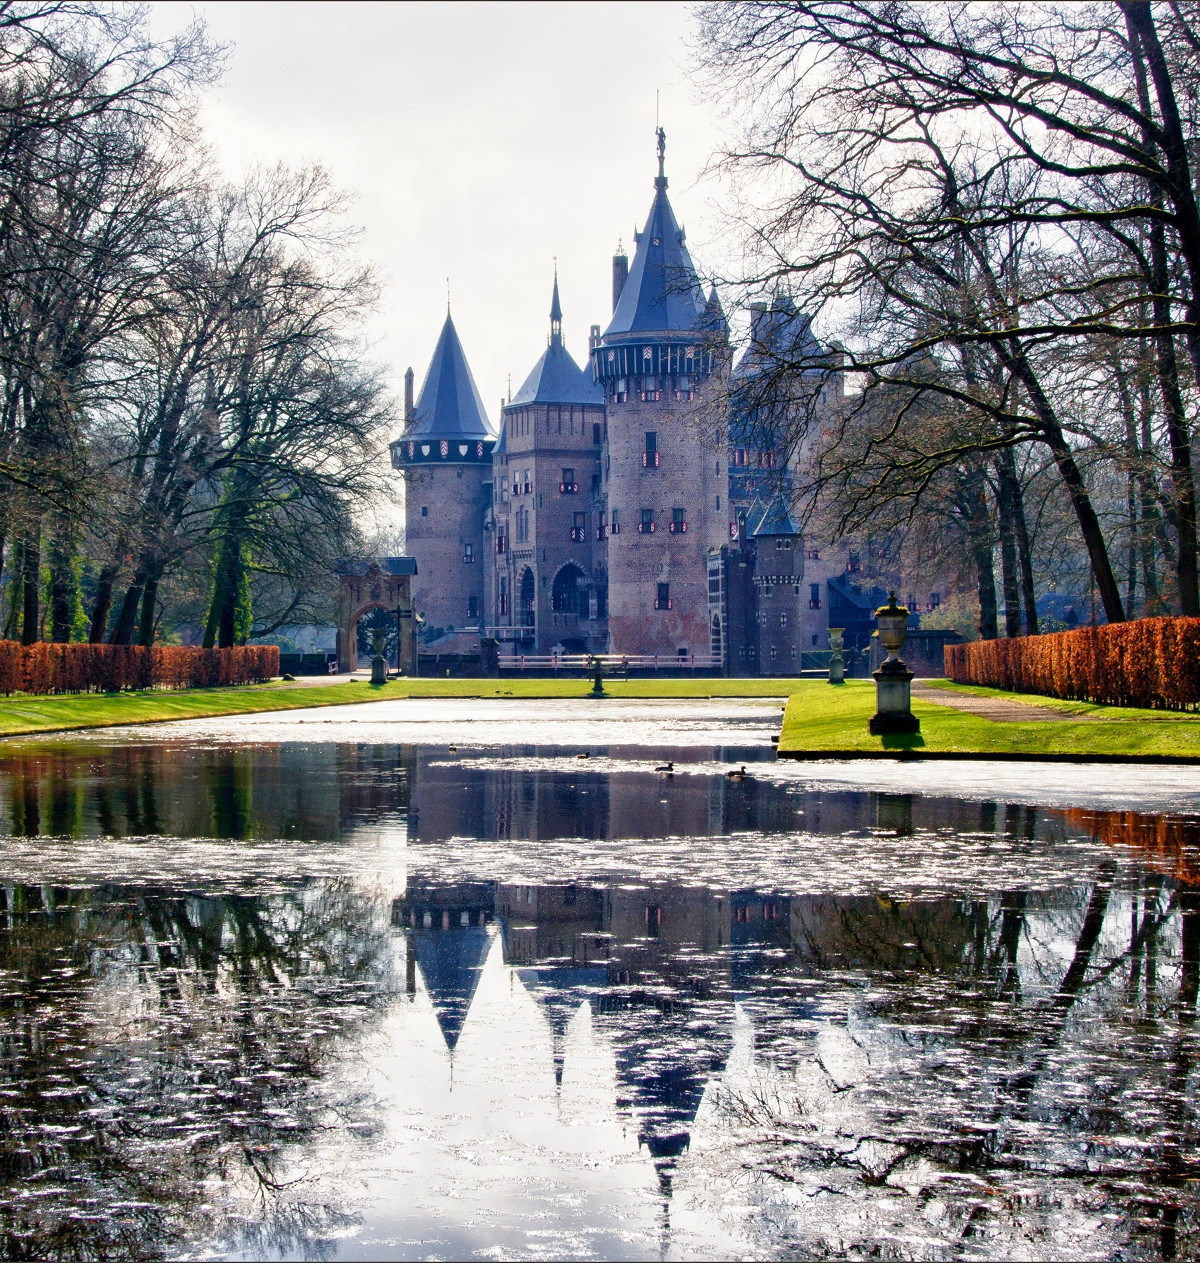 Castle de Haar. Credit Bert Kaufmann, flickr